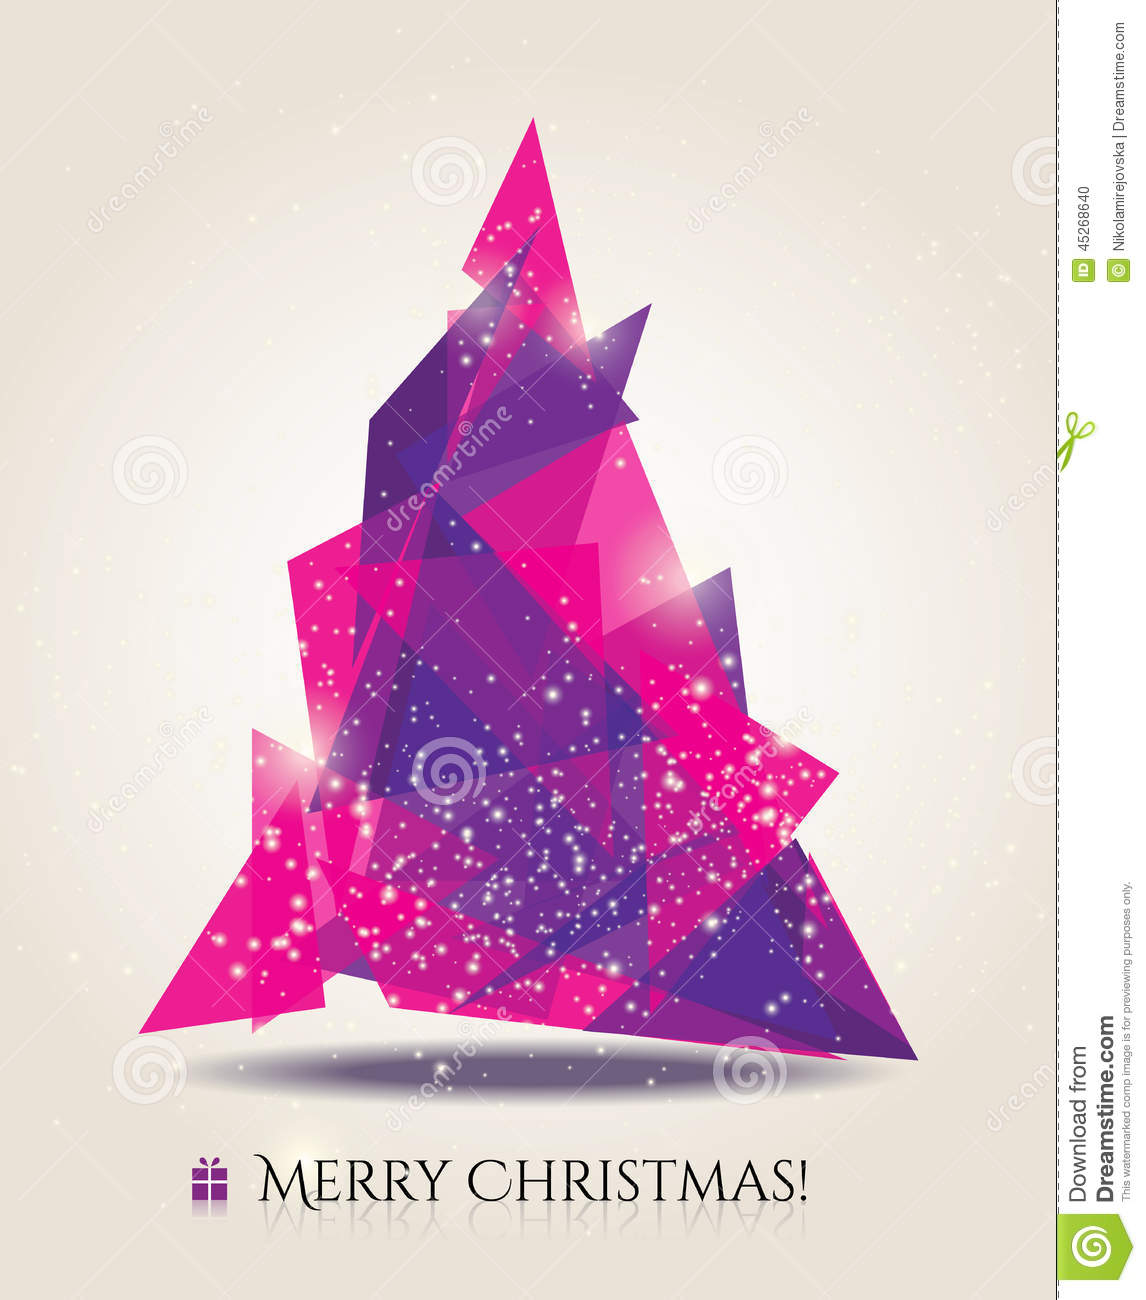 abstract christmas card with modern elements stock vector